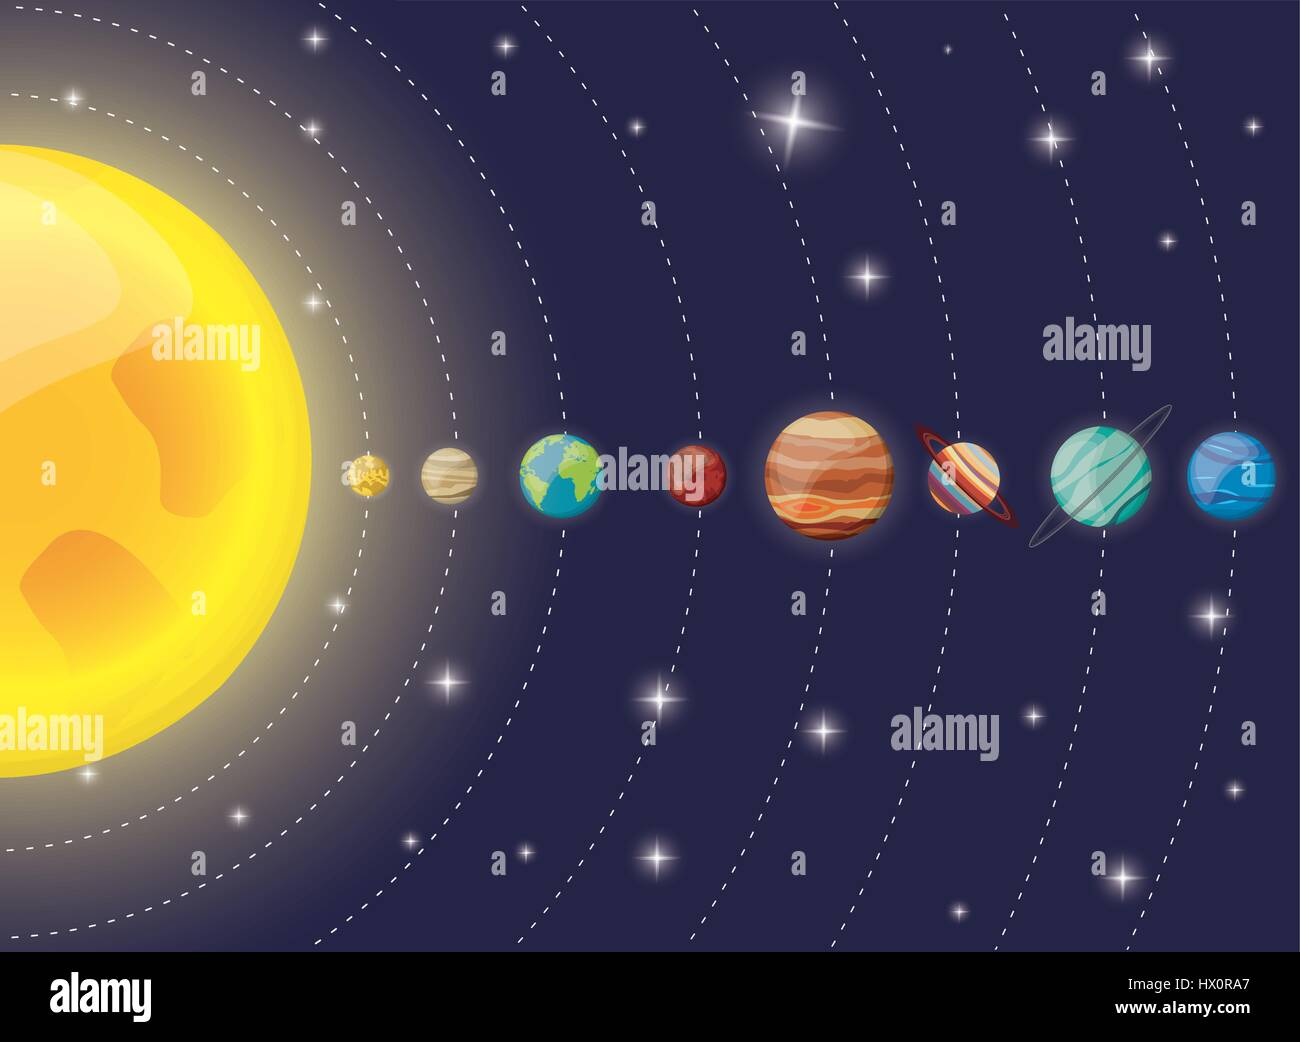 Solar system planets sun diagram stock vector art illustration solar system planets sun diagram ccuart Image collections